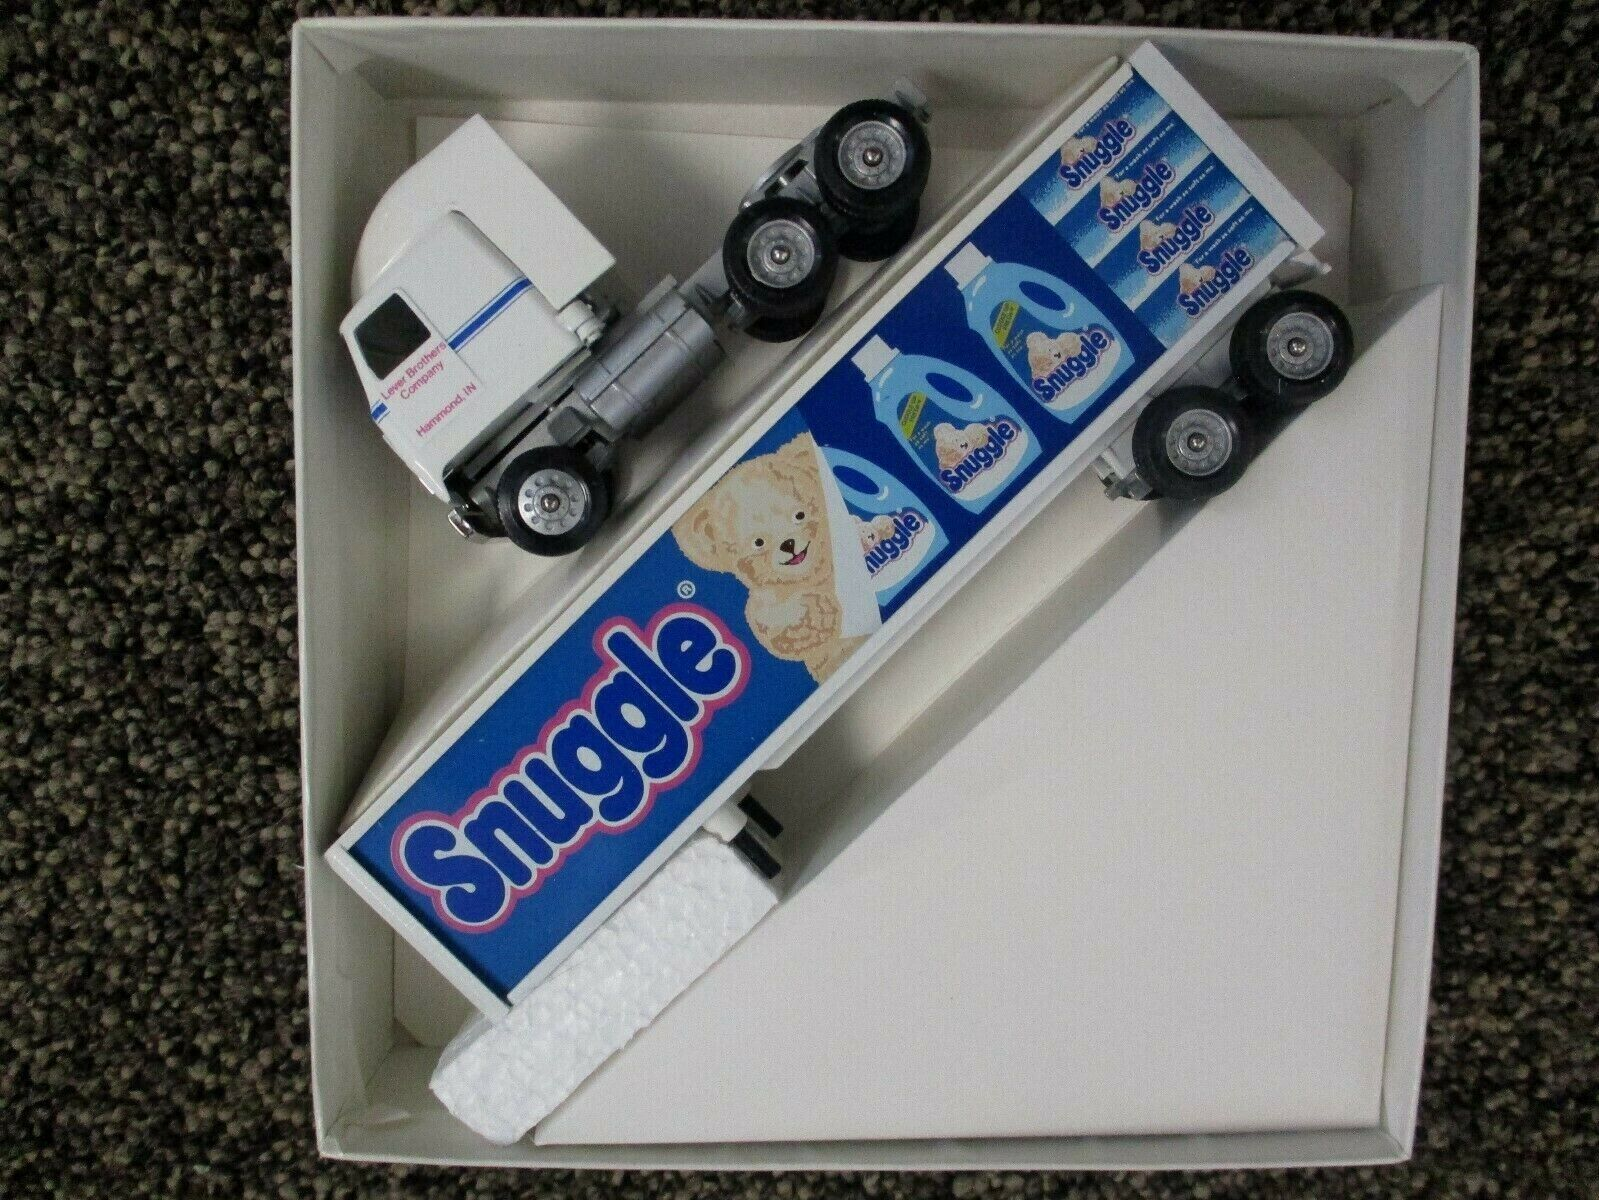 Winross 1/64 Scale Diecast Tractor Trailer Snuggle Fabric Softener New In Box